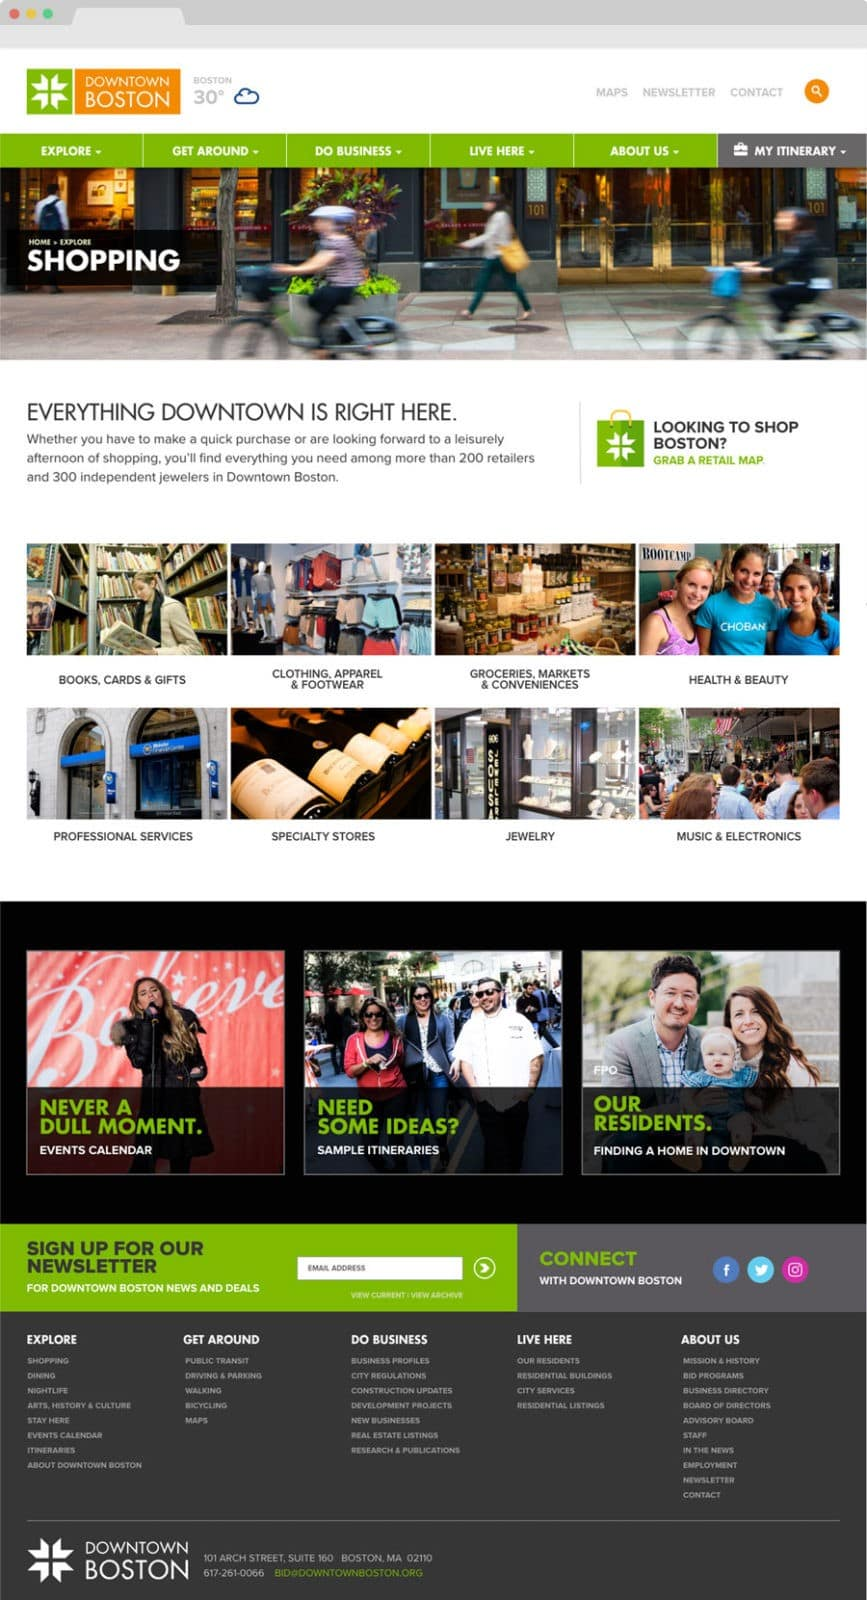 Boston BID UX Design design. Clutch Creative co. Burlington, VT website design.